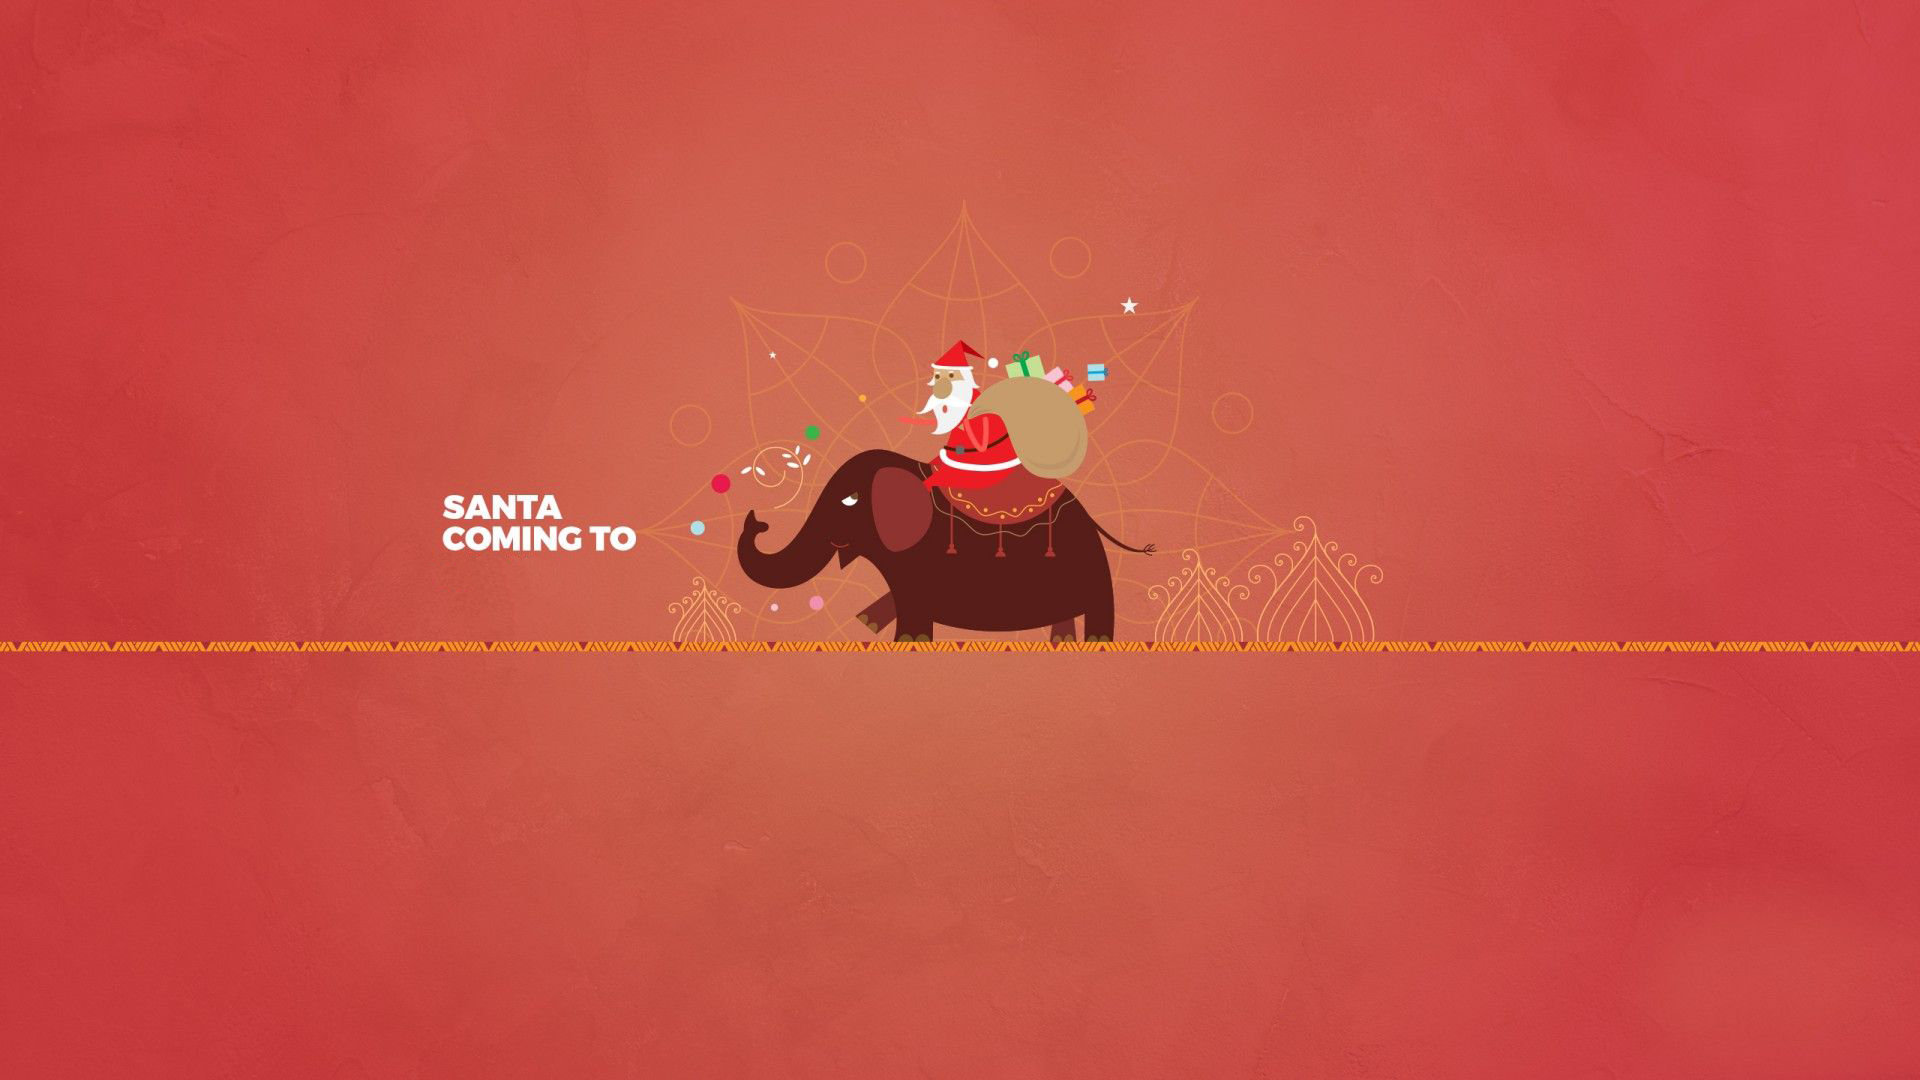 Santa Coming to Your Town Minimalist Christmas Wallpaper